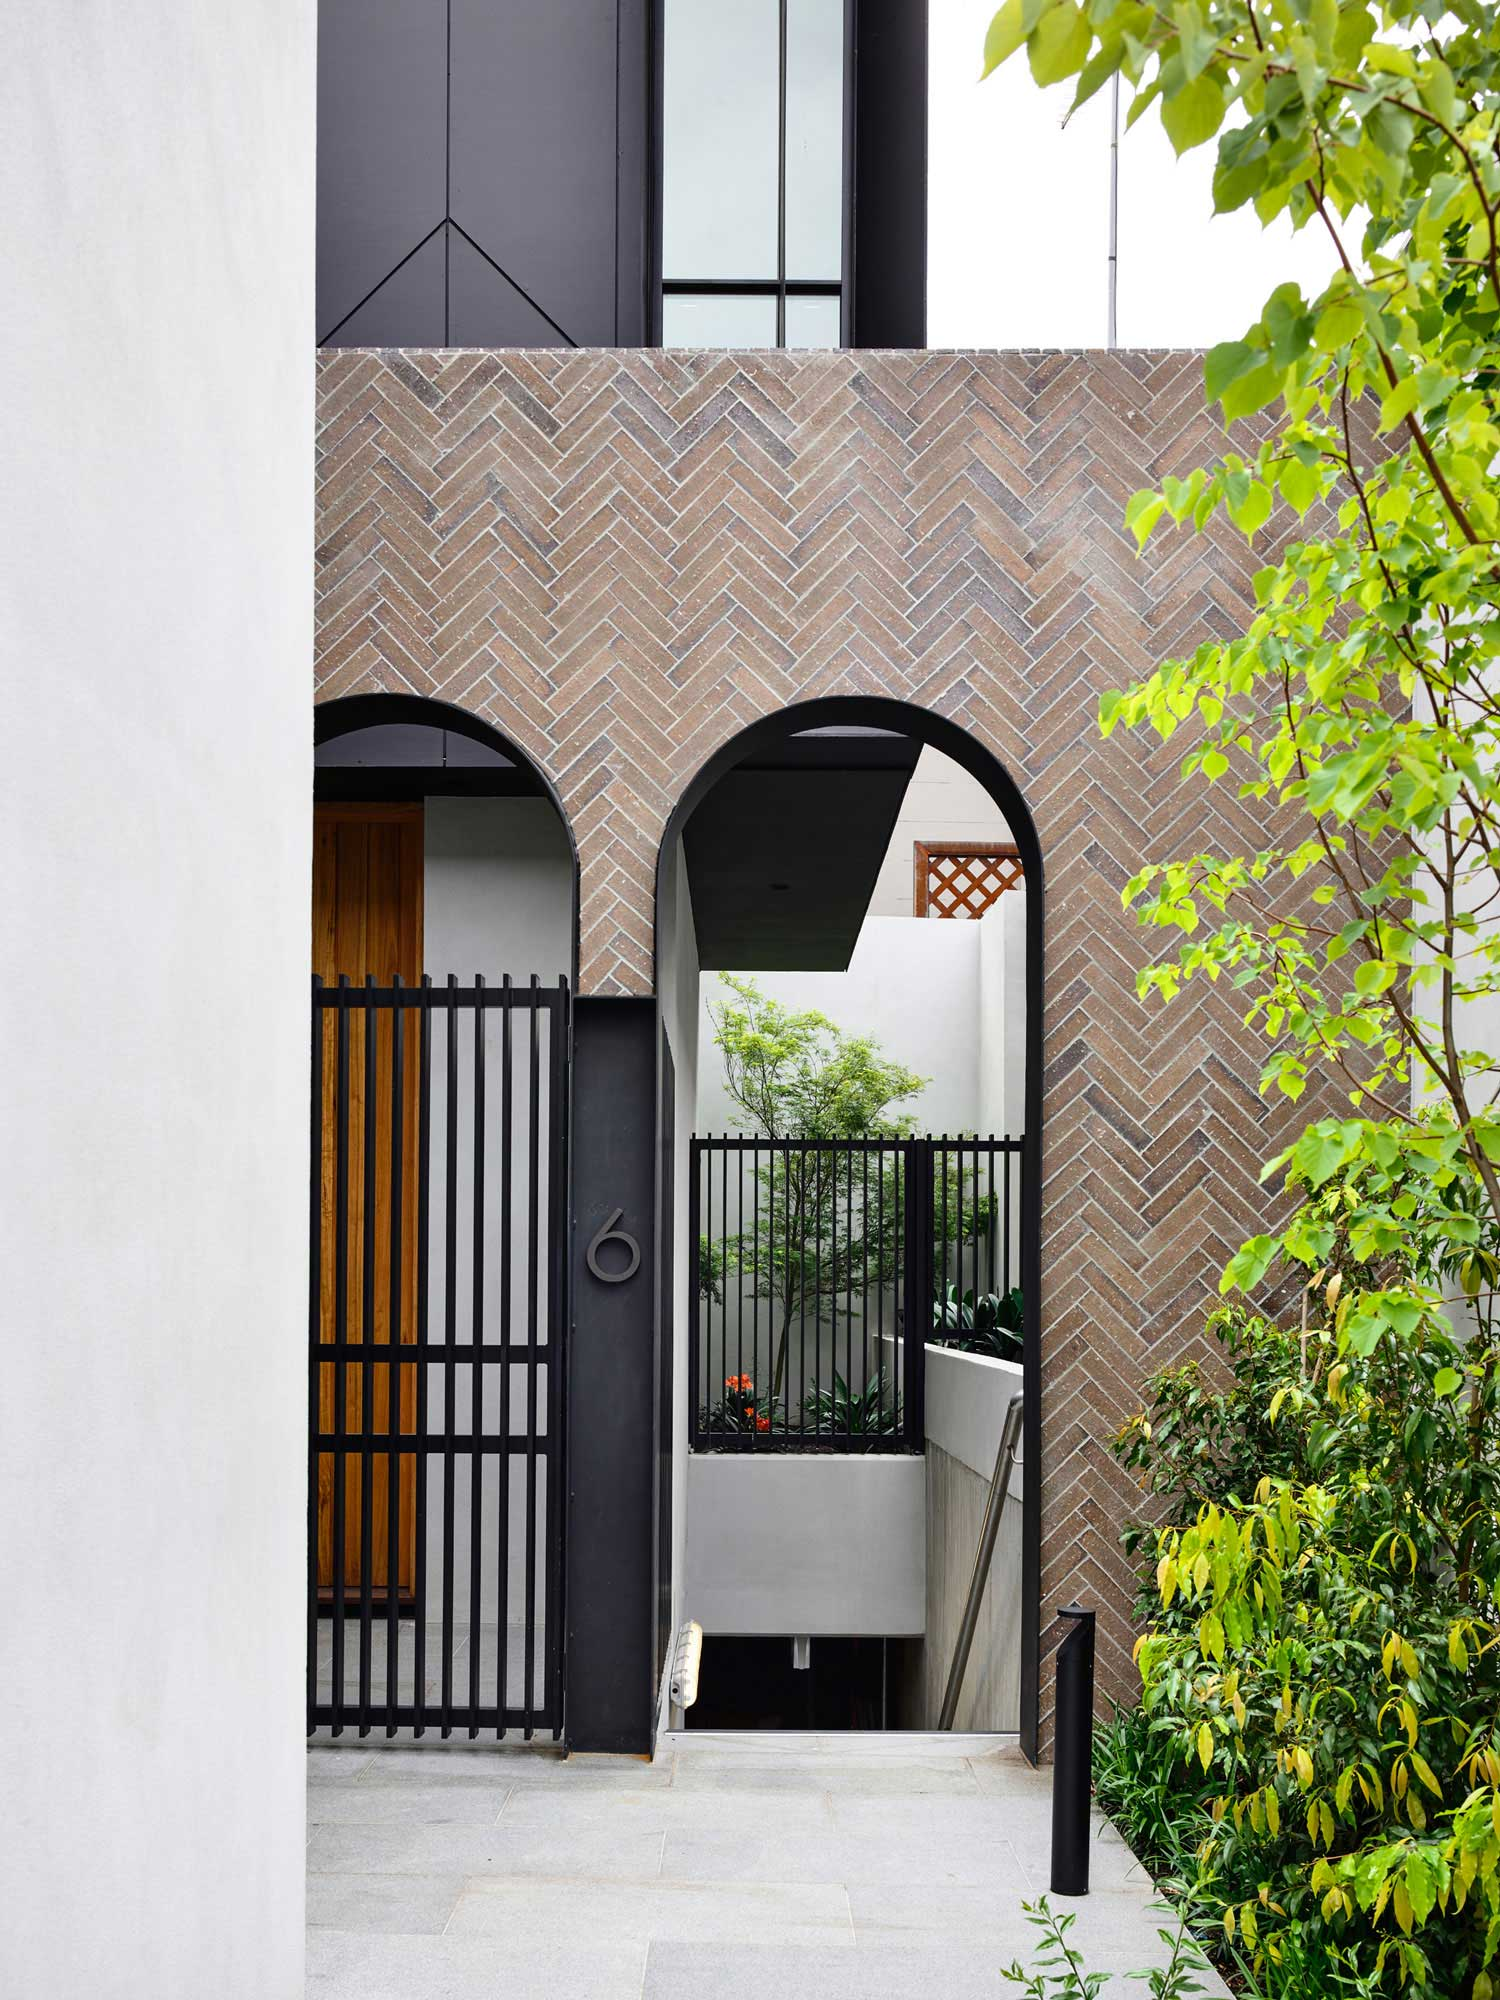 Kooyond Road House, Melburne by Kennedy Nolan | Yellowtrace